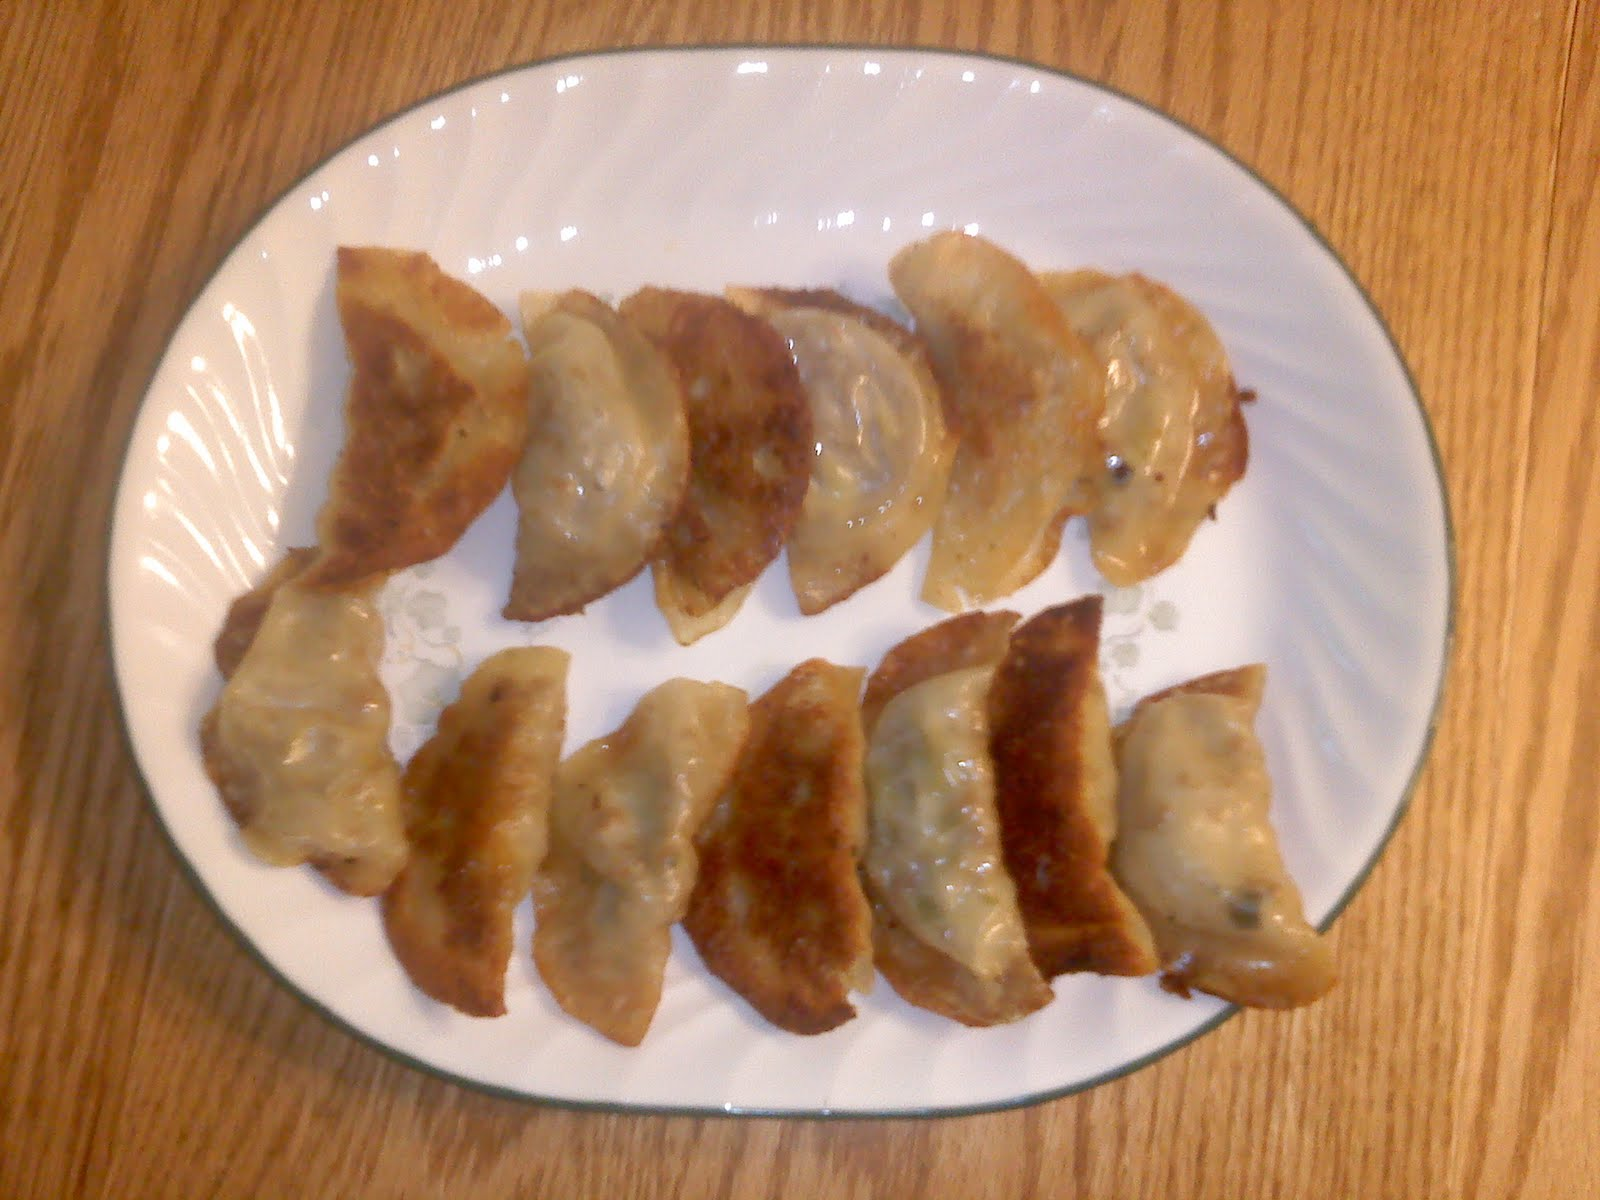 Pot Stickers, Noodles and Sauce, Oh My!